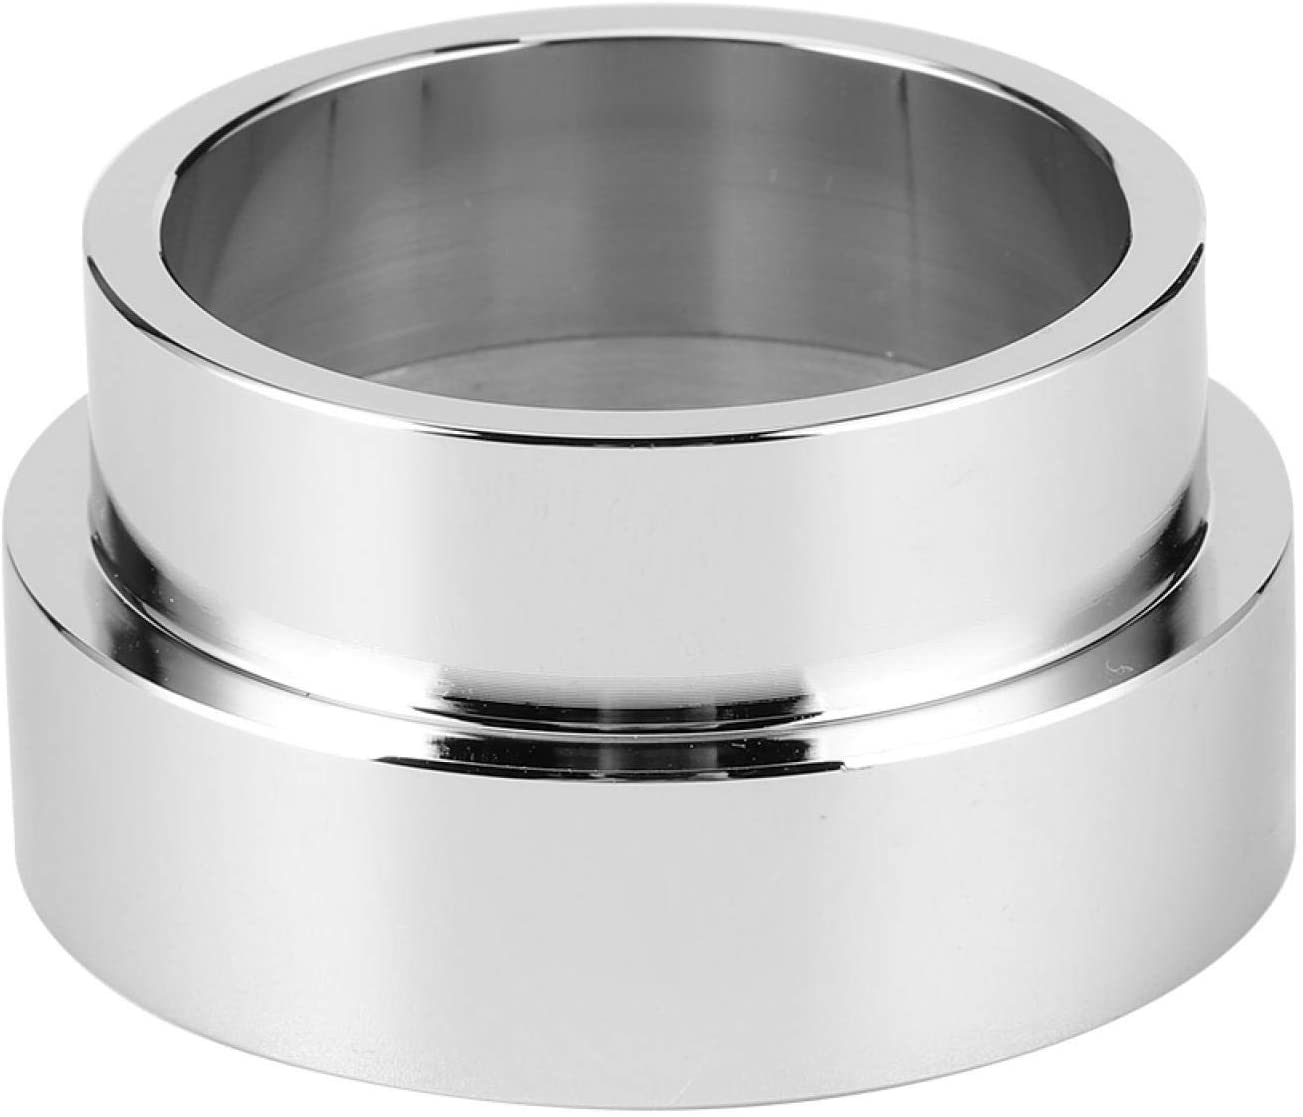 Flexplate Adapter Sales results No. 1 Spacer LS for Max 81% OFF TH350 T